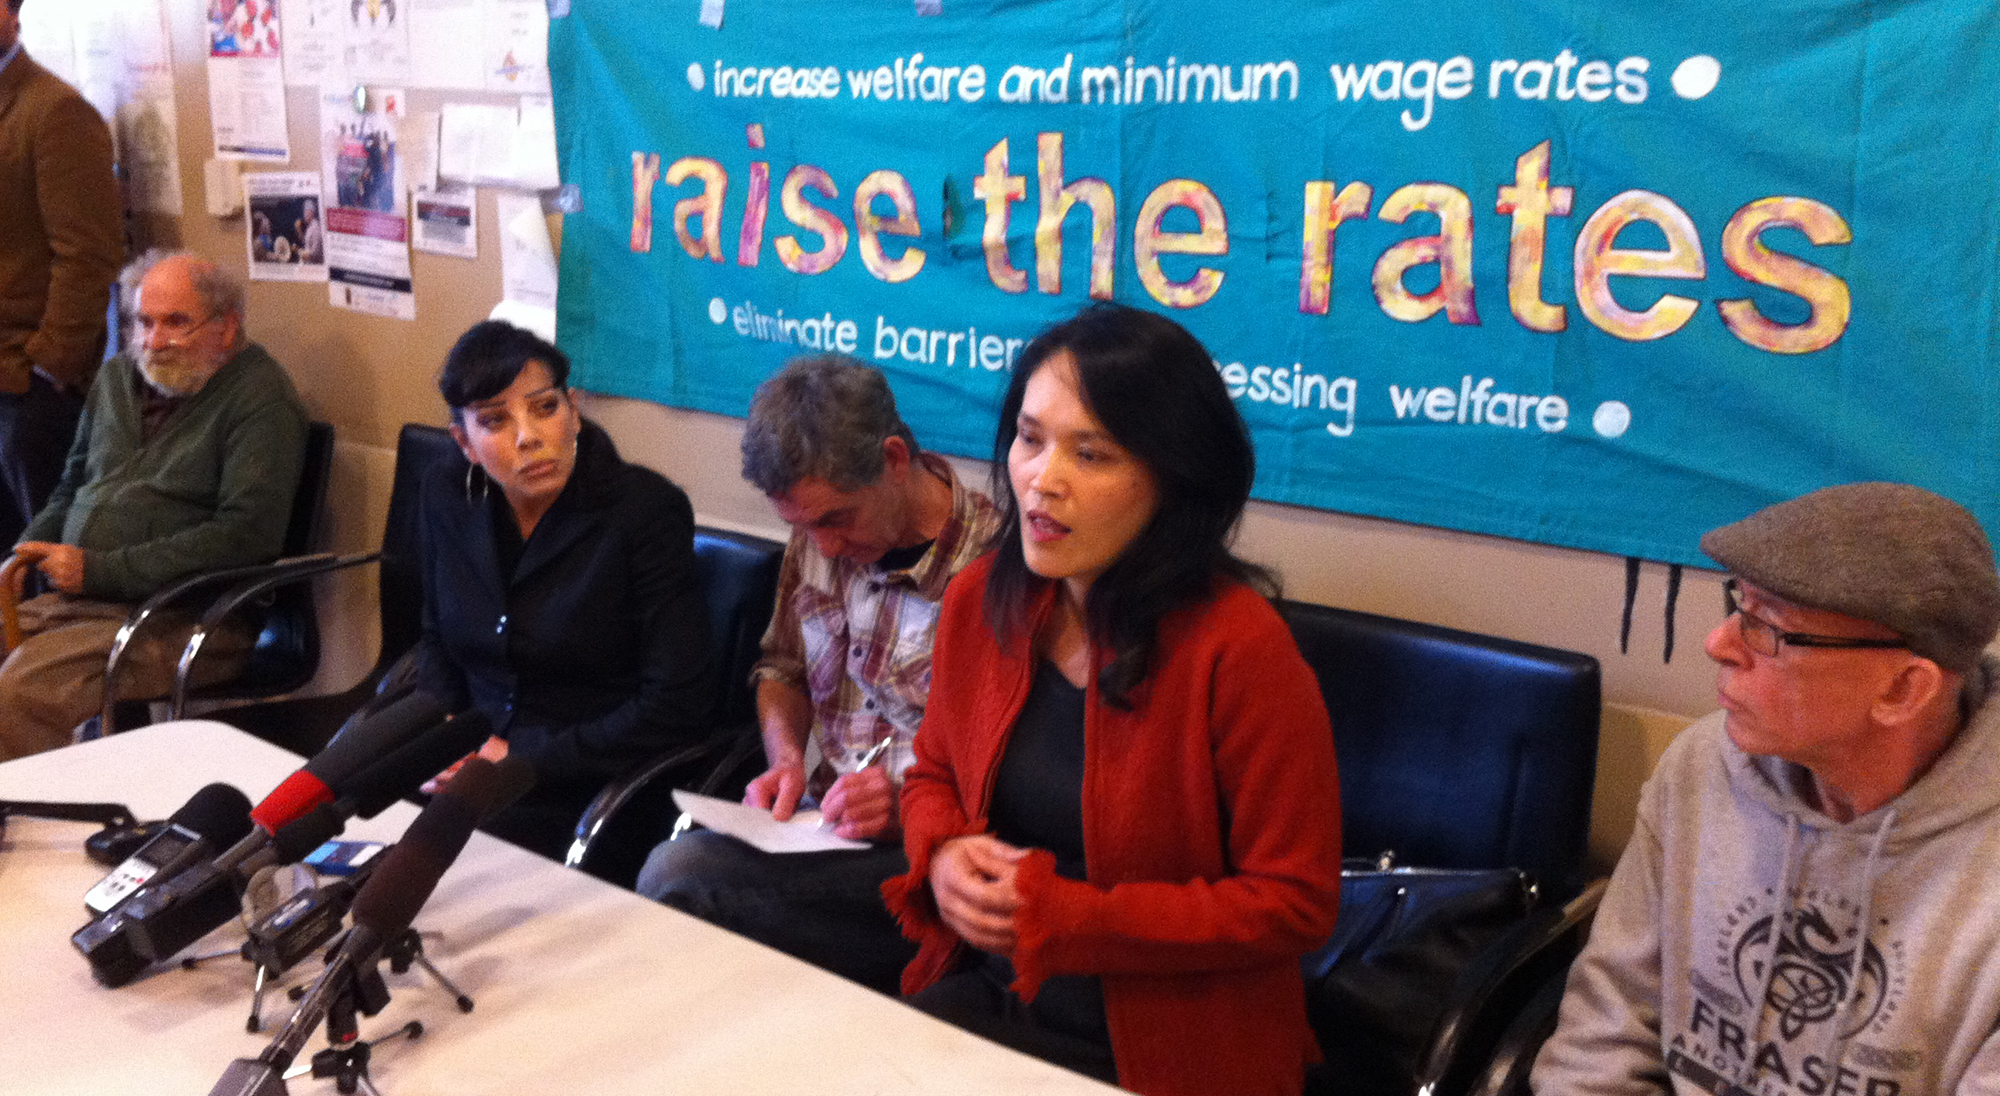 Bif Naked and Jenny Kwan with members of Raise the Rates Coalition at press conference at Aboriginal Front Door on Oct, 27th to help promote the 4th Annual Welfare Food Challenge